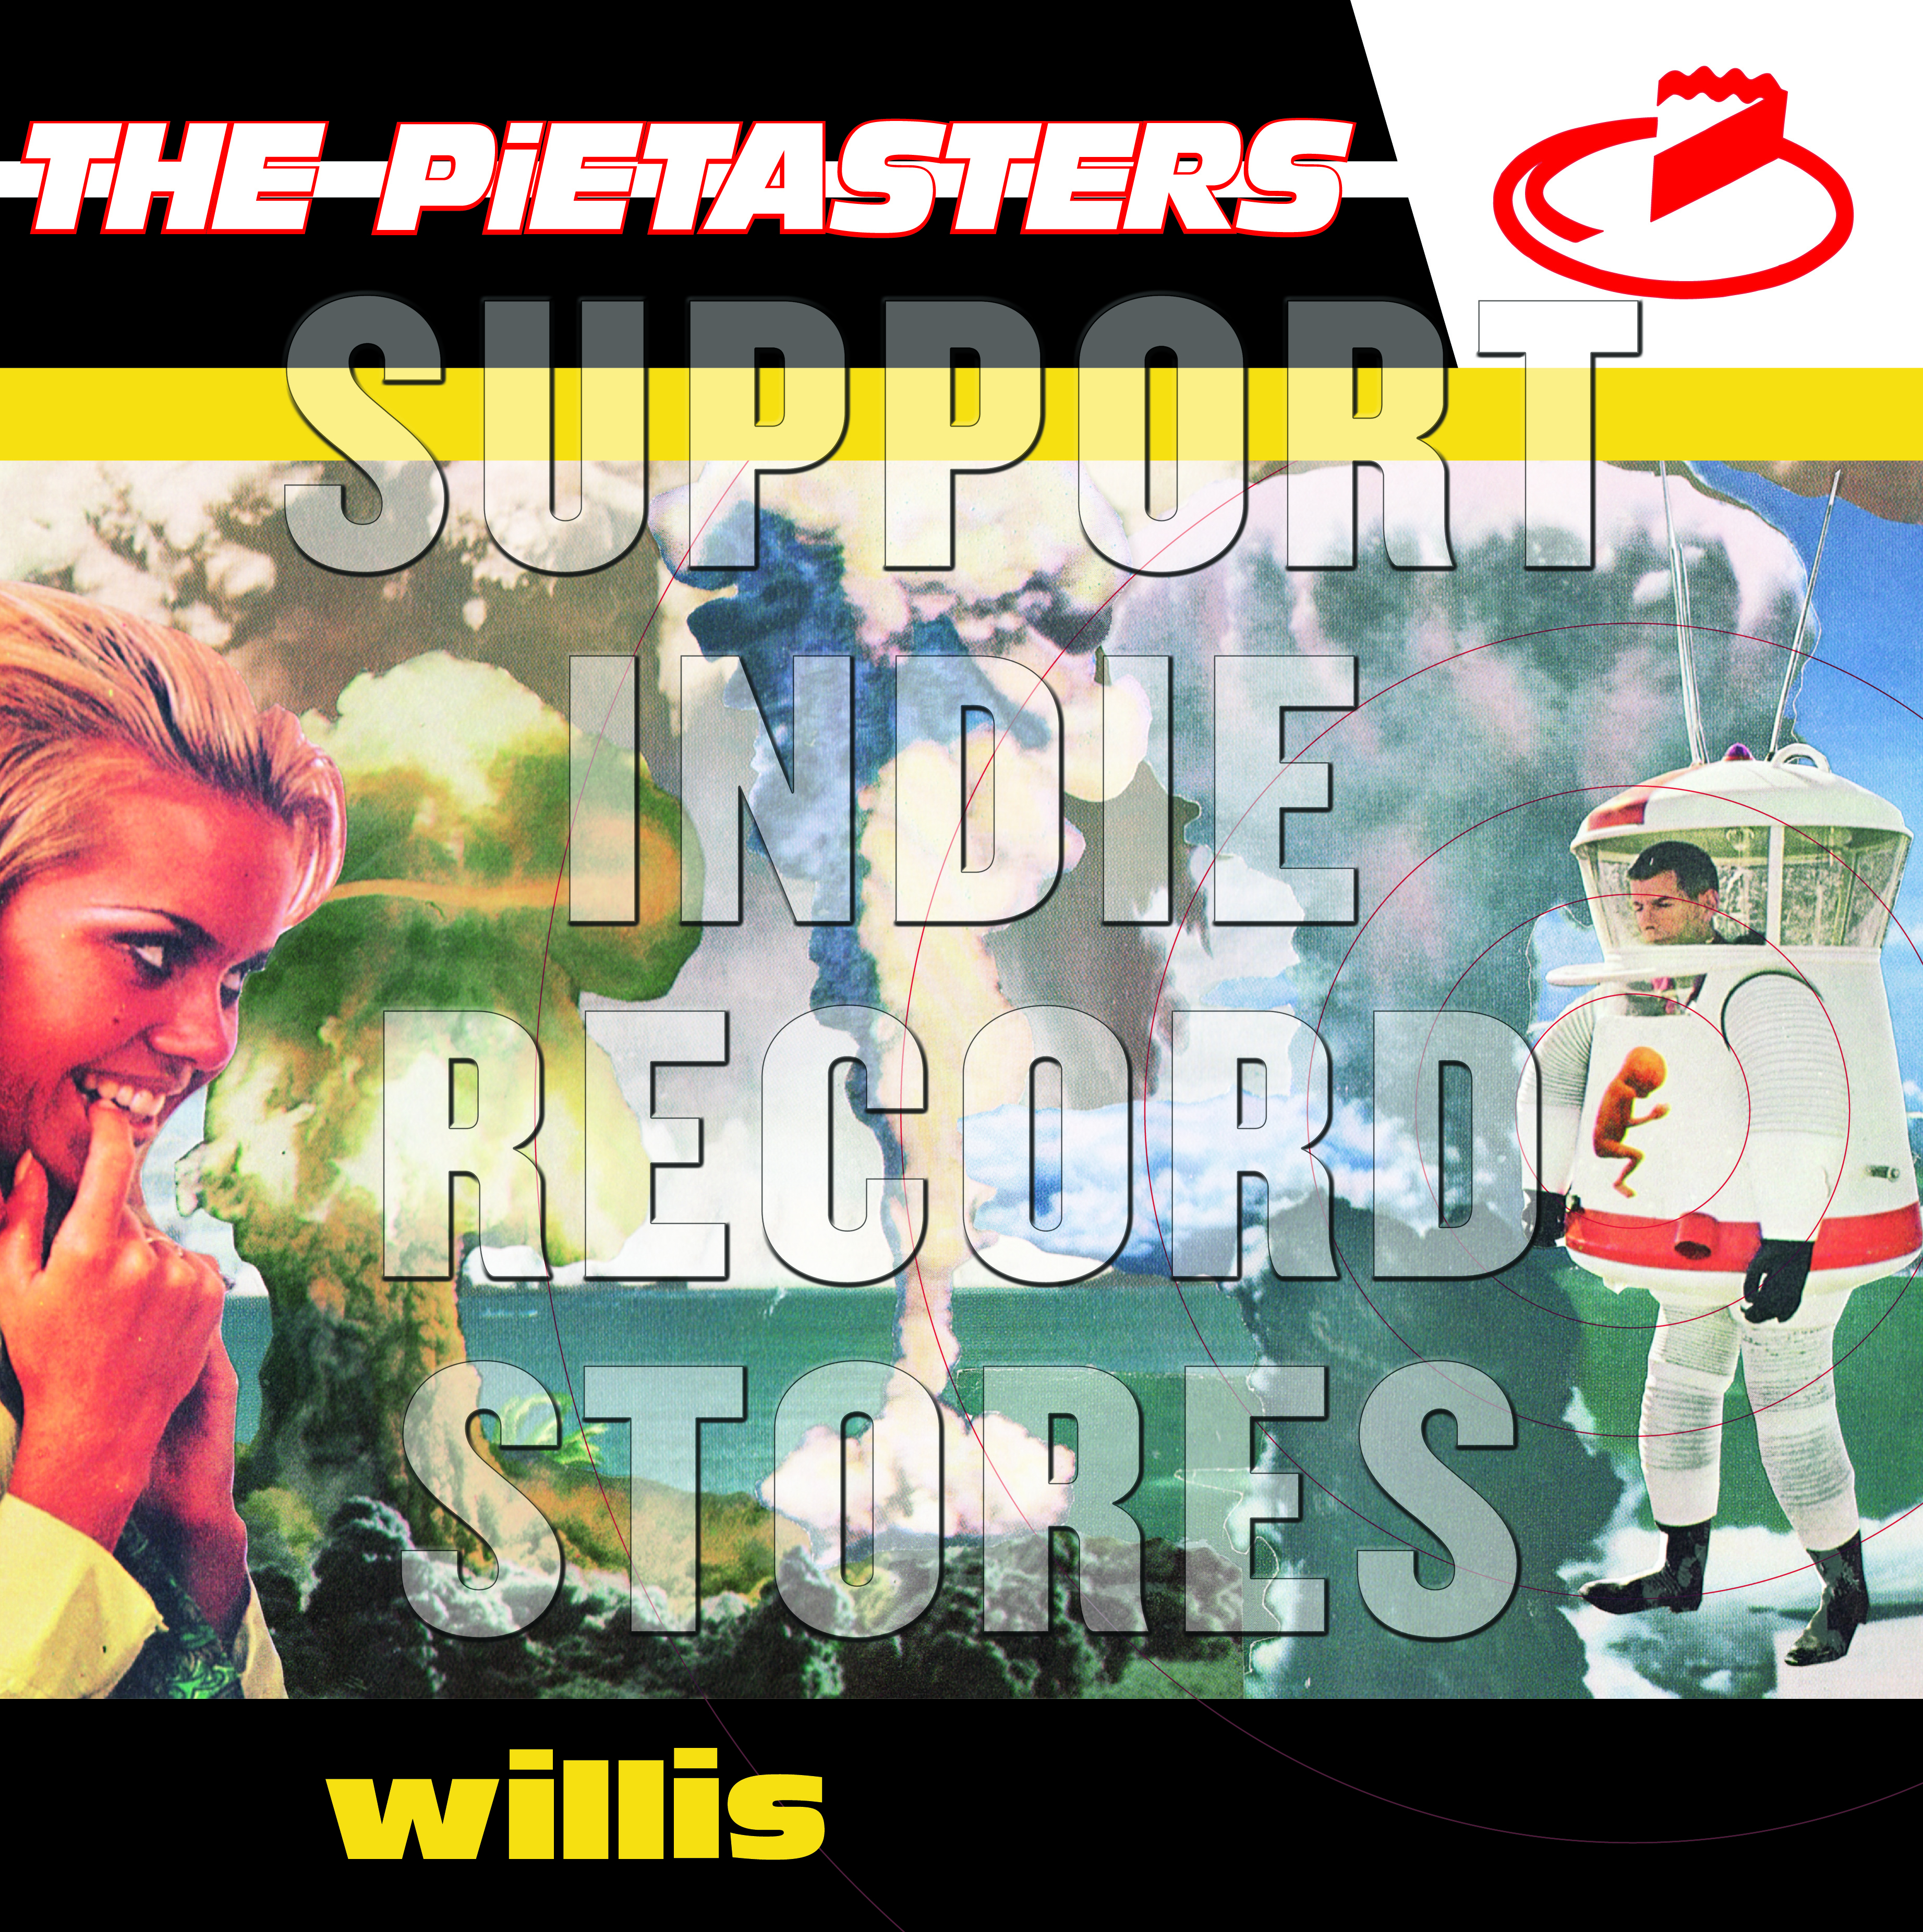 The Pietasters - Willis [RSD 2019]